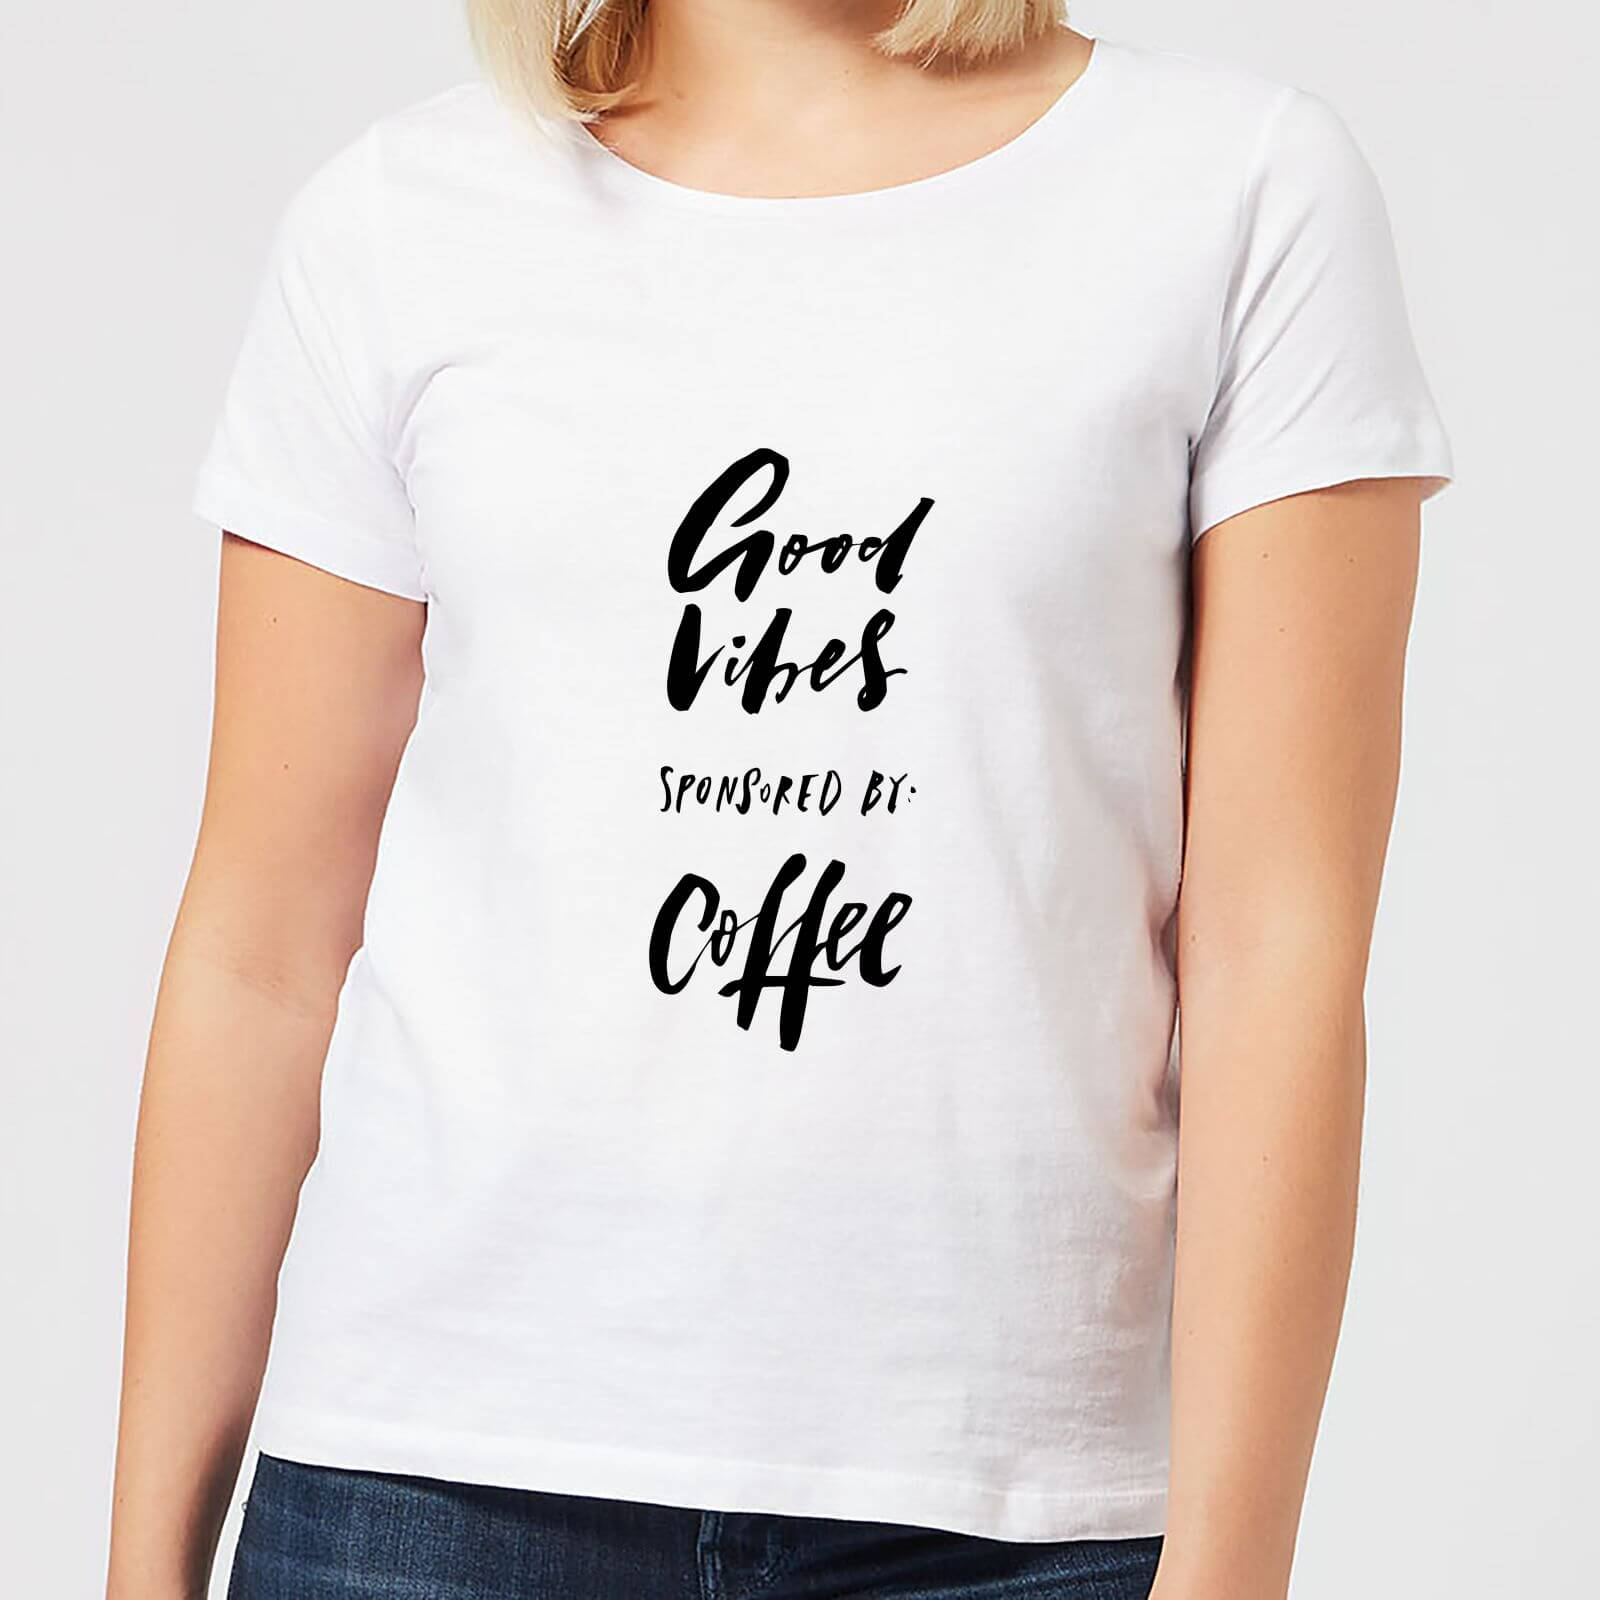 828a443ae Good Vibes Sponsored By Coffee Women's T-Shirt - White | IWOOT